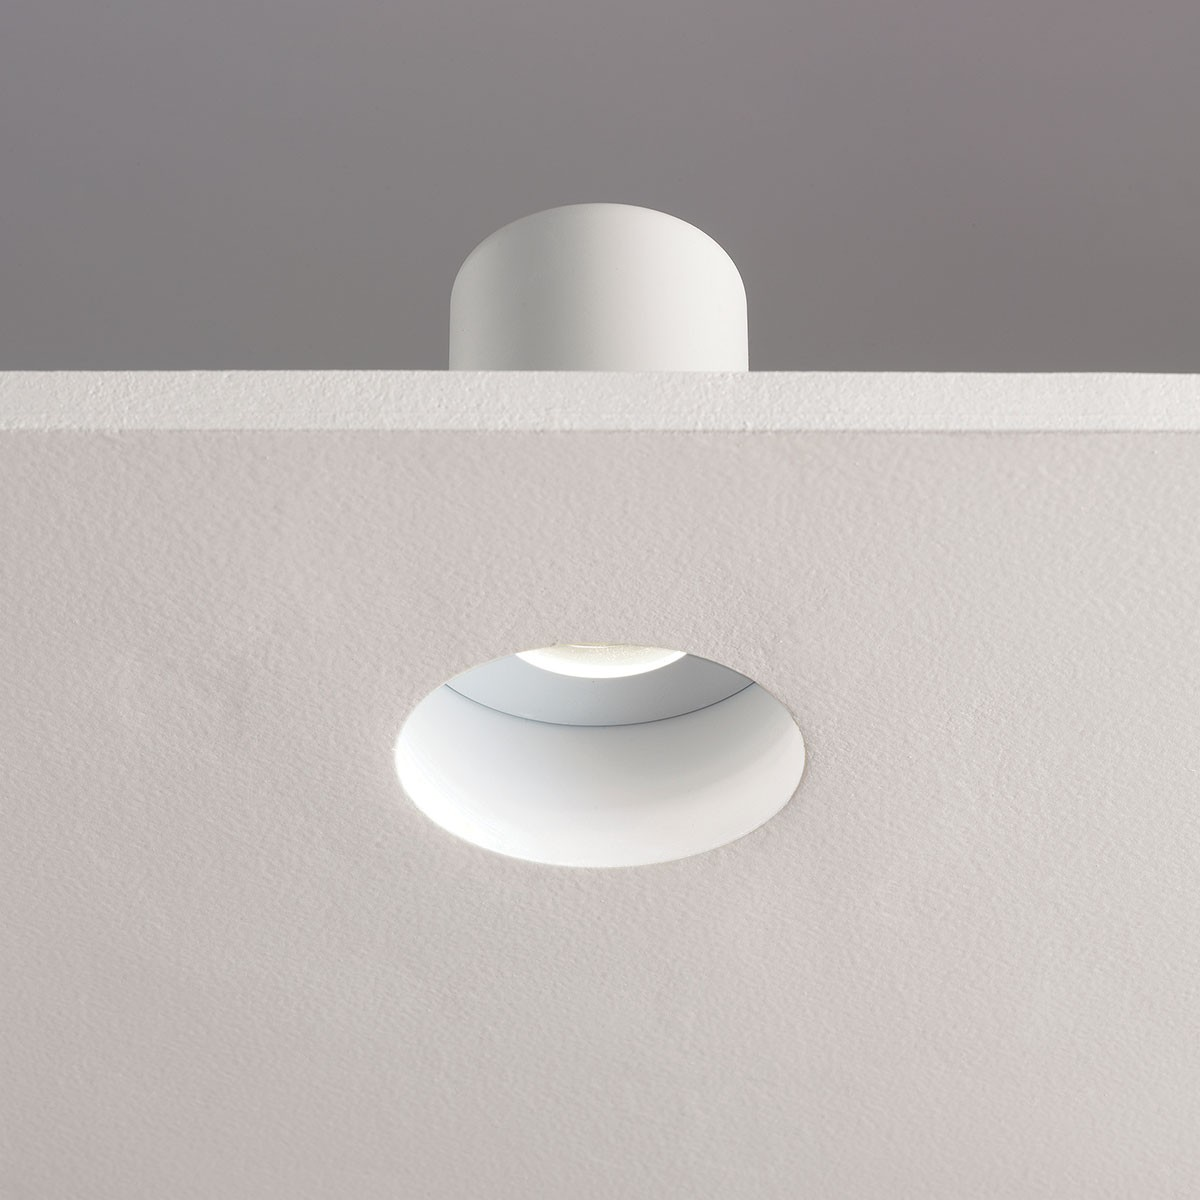 Astro Trimless Round Mr16 White Bathroom Downlight At Uk Electrical Supplies